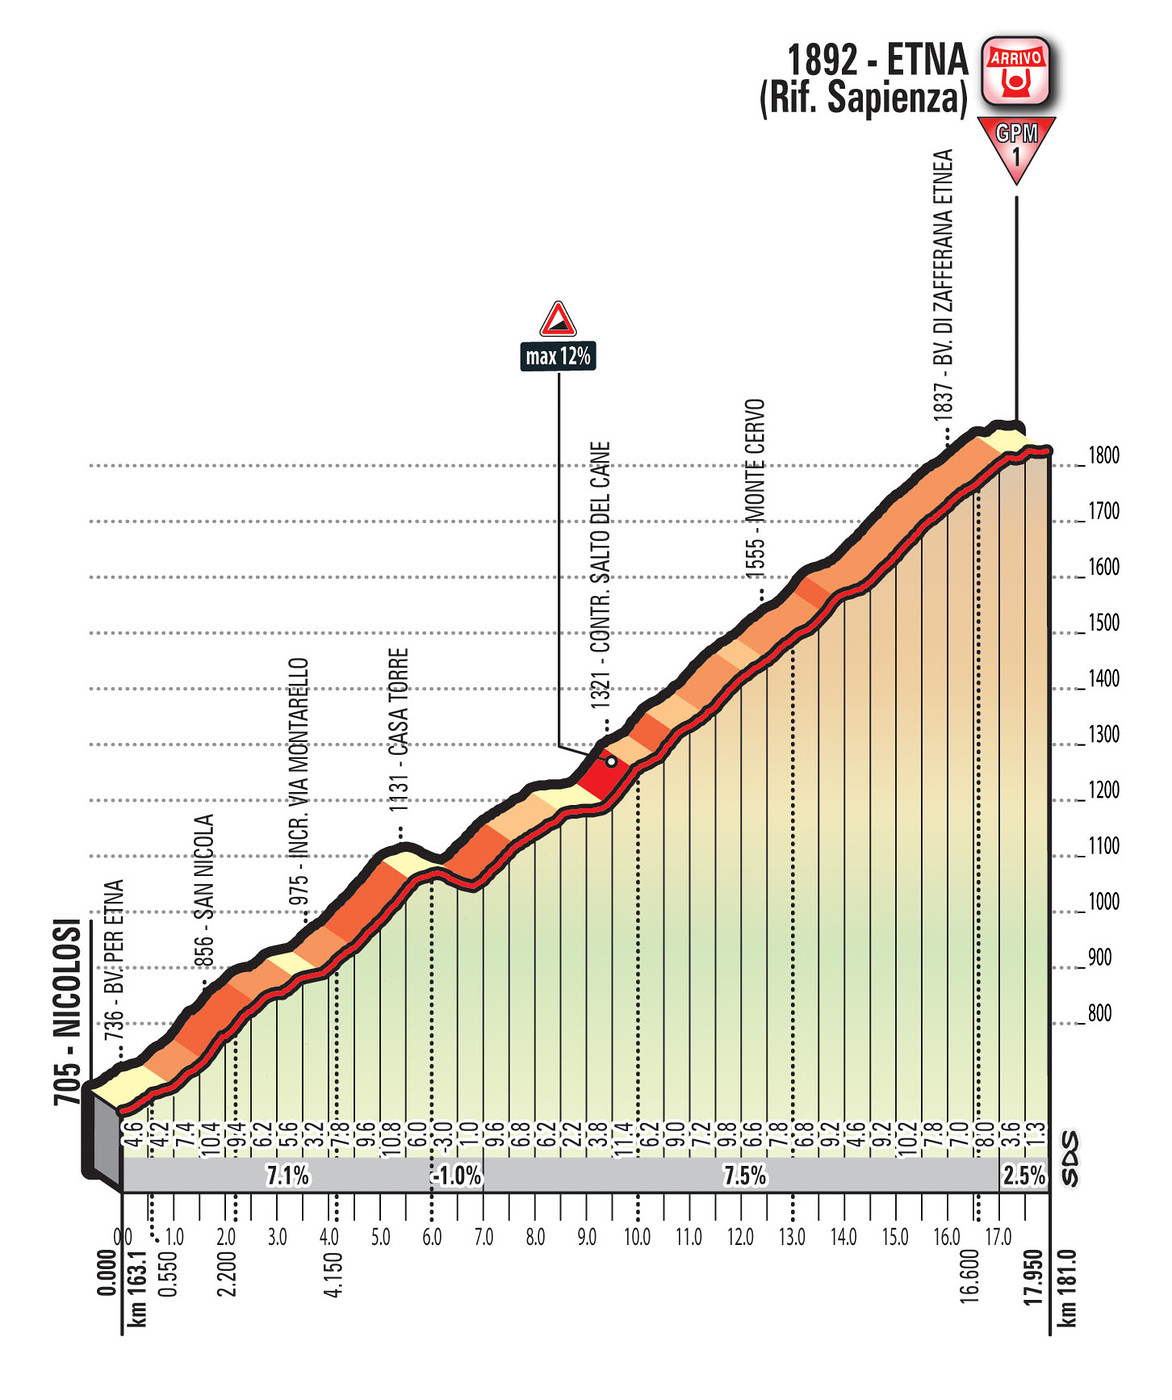 Giro 2017 Stage 4 Ascent of Etna